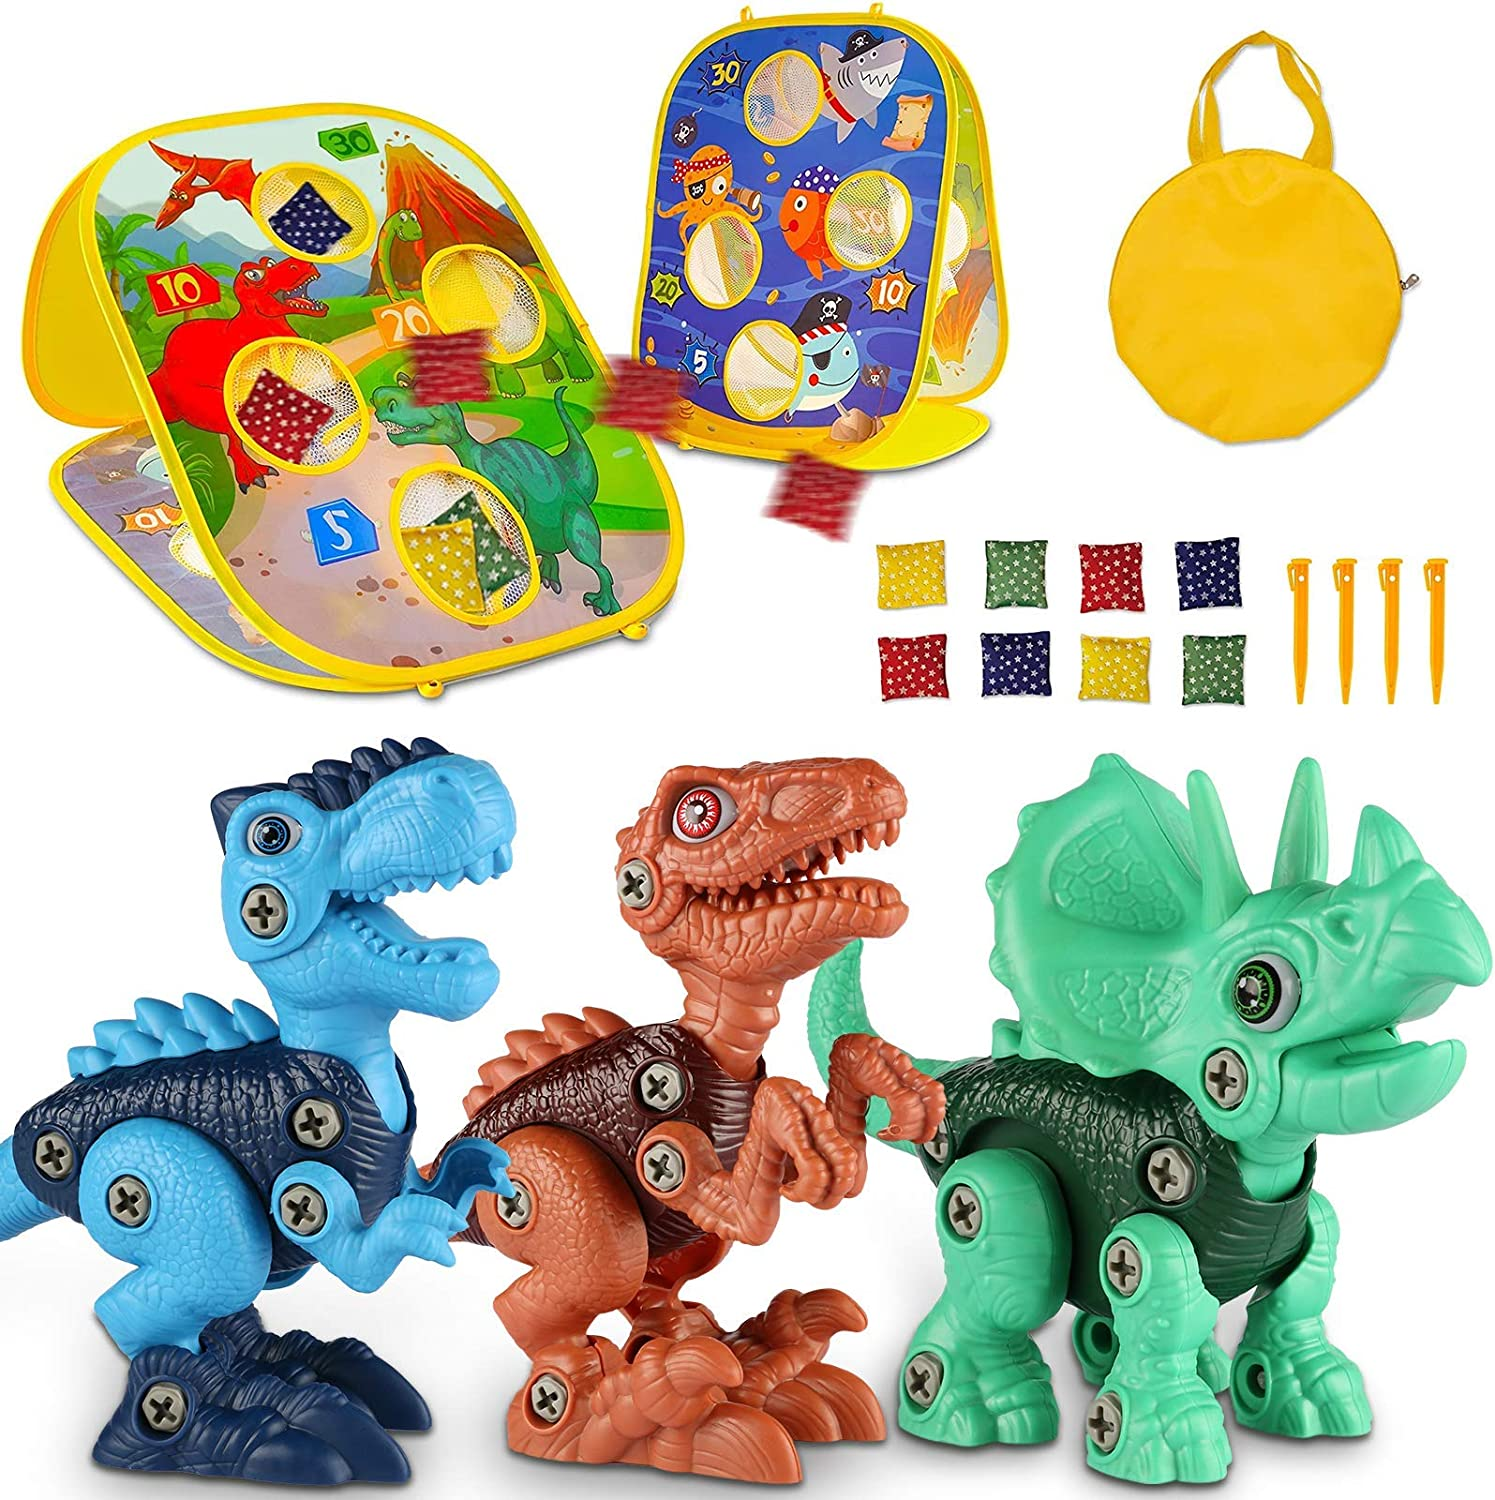 Laradola New products world's highest quality popular Take Apart Dinosaur Toys for Kids Bean Max 70% OFF 5-7 with 3-5 Bag